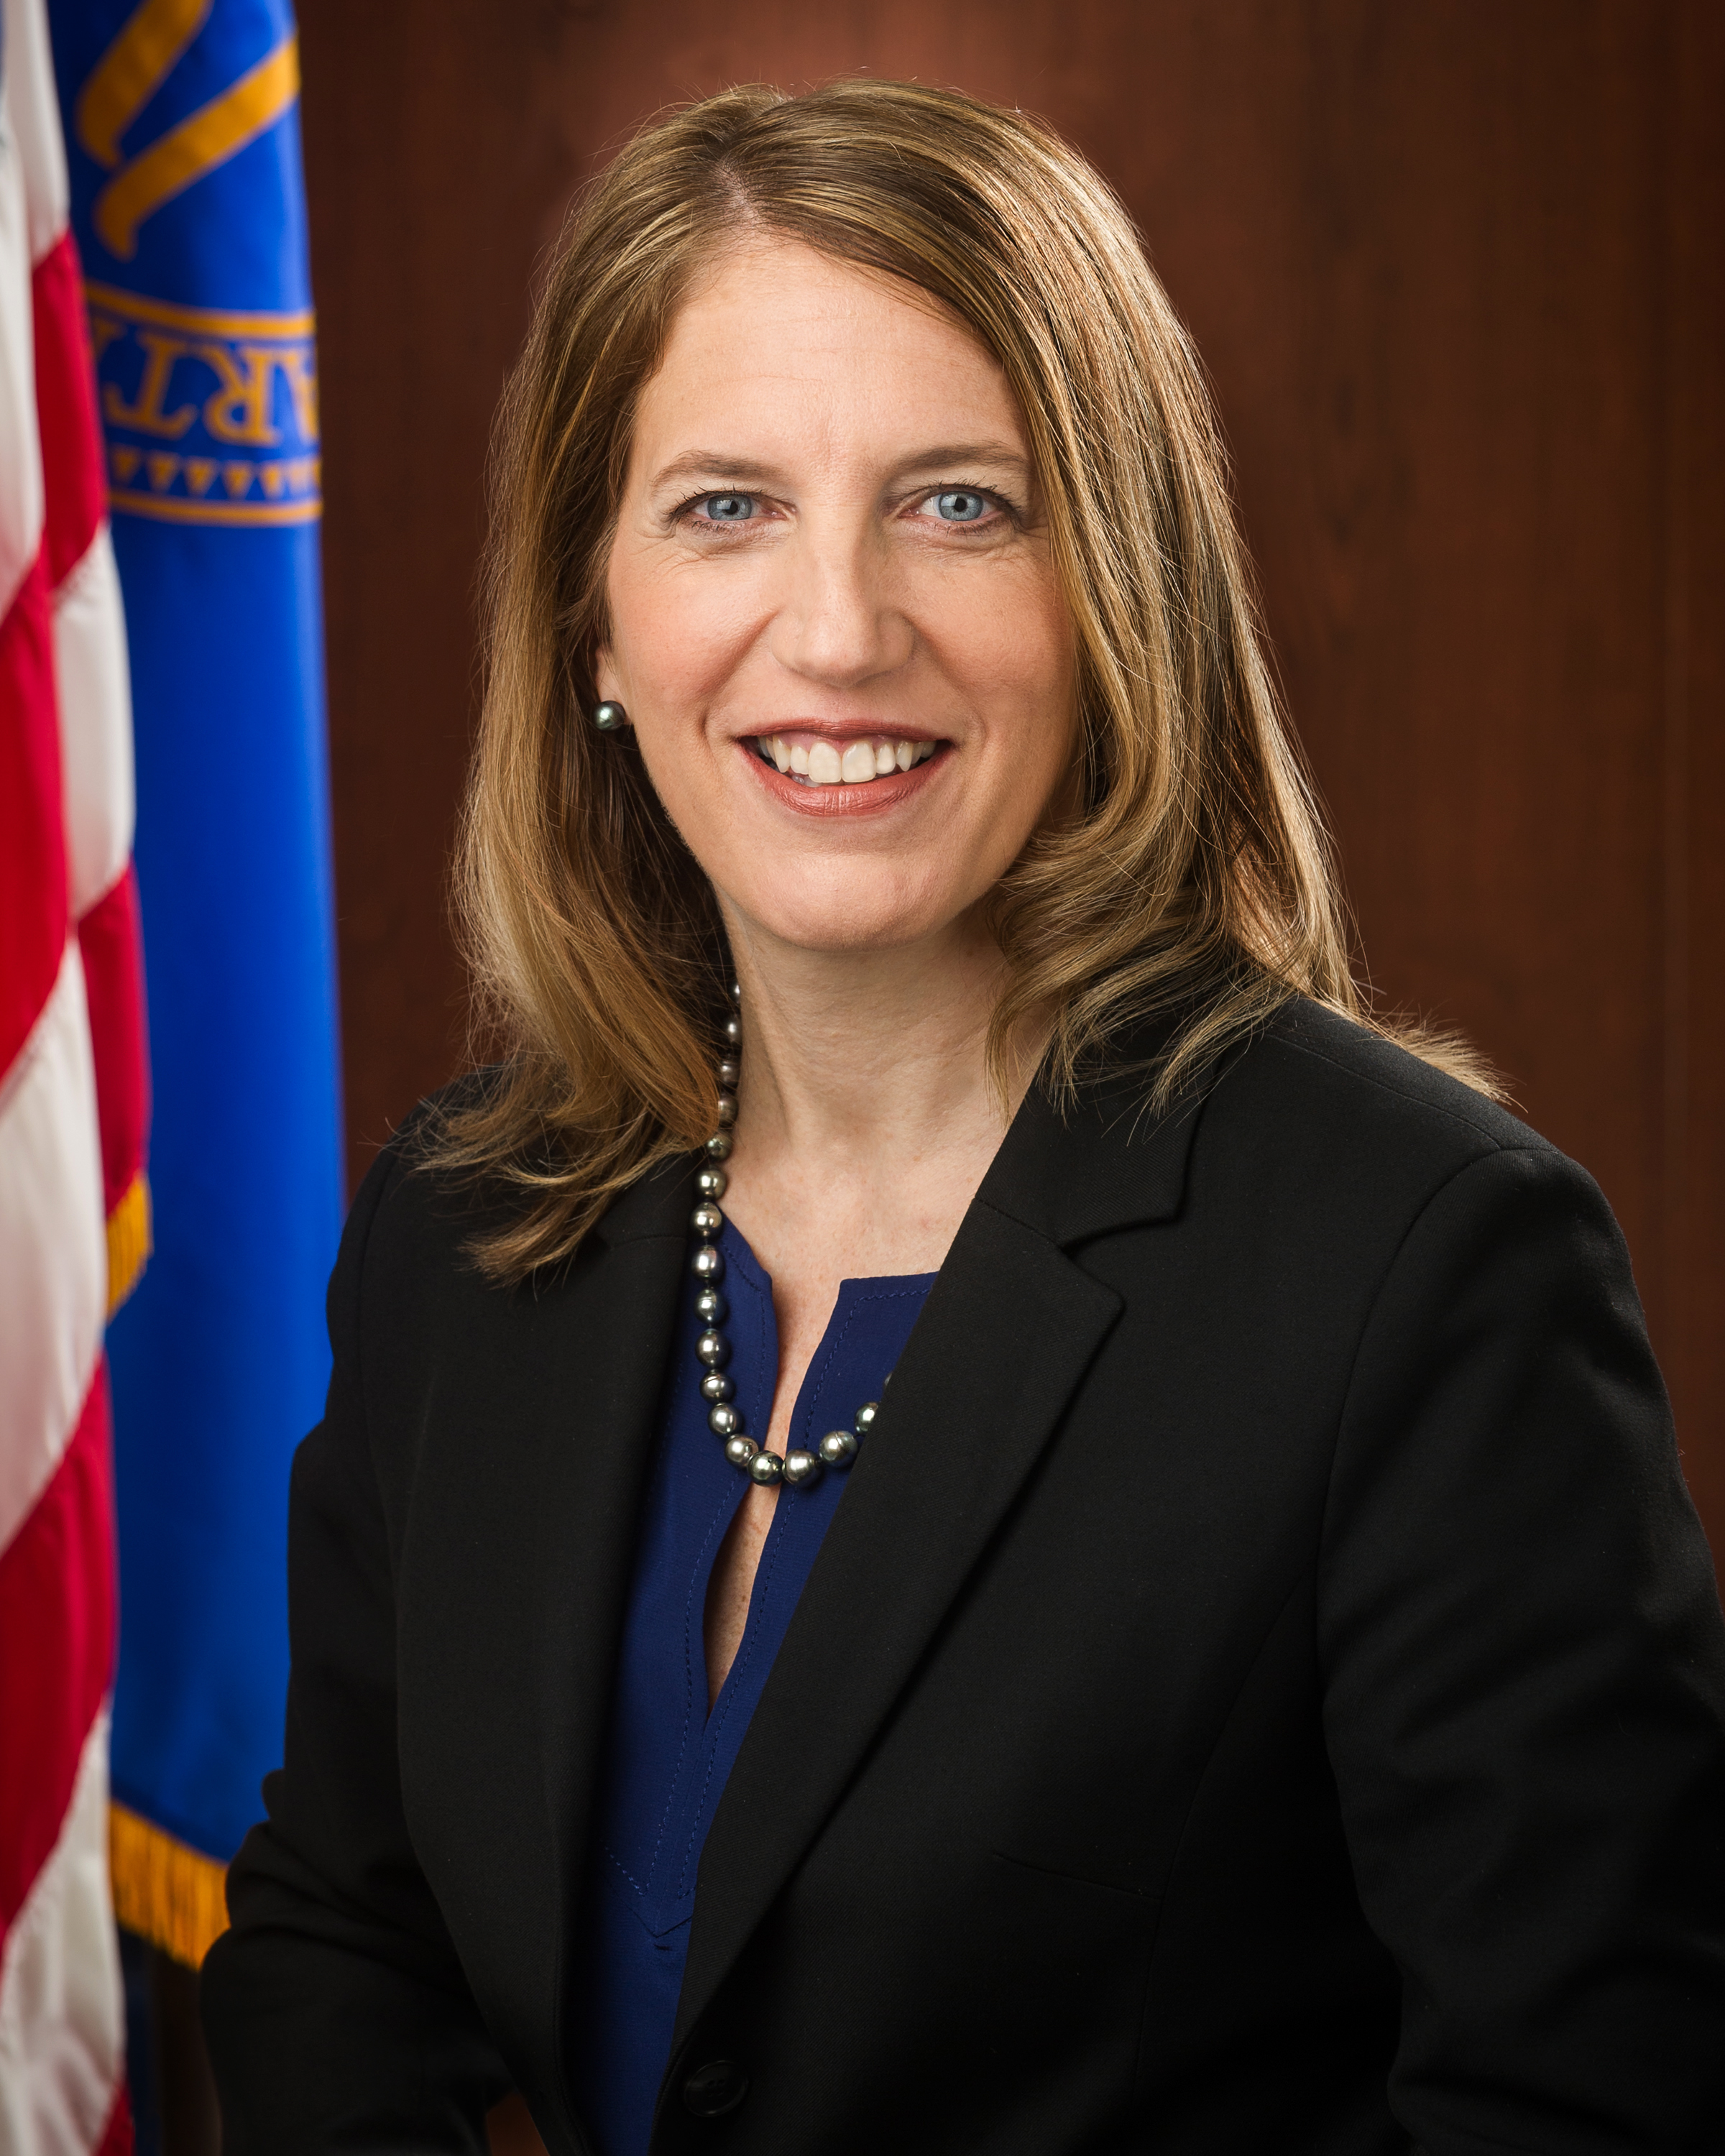 Health and Human Services Secretary Sylvia Burwell issues a PREP Act order to protect Ebola vaccine efforts from legal claims.